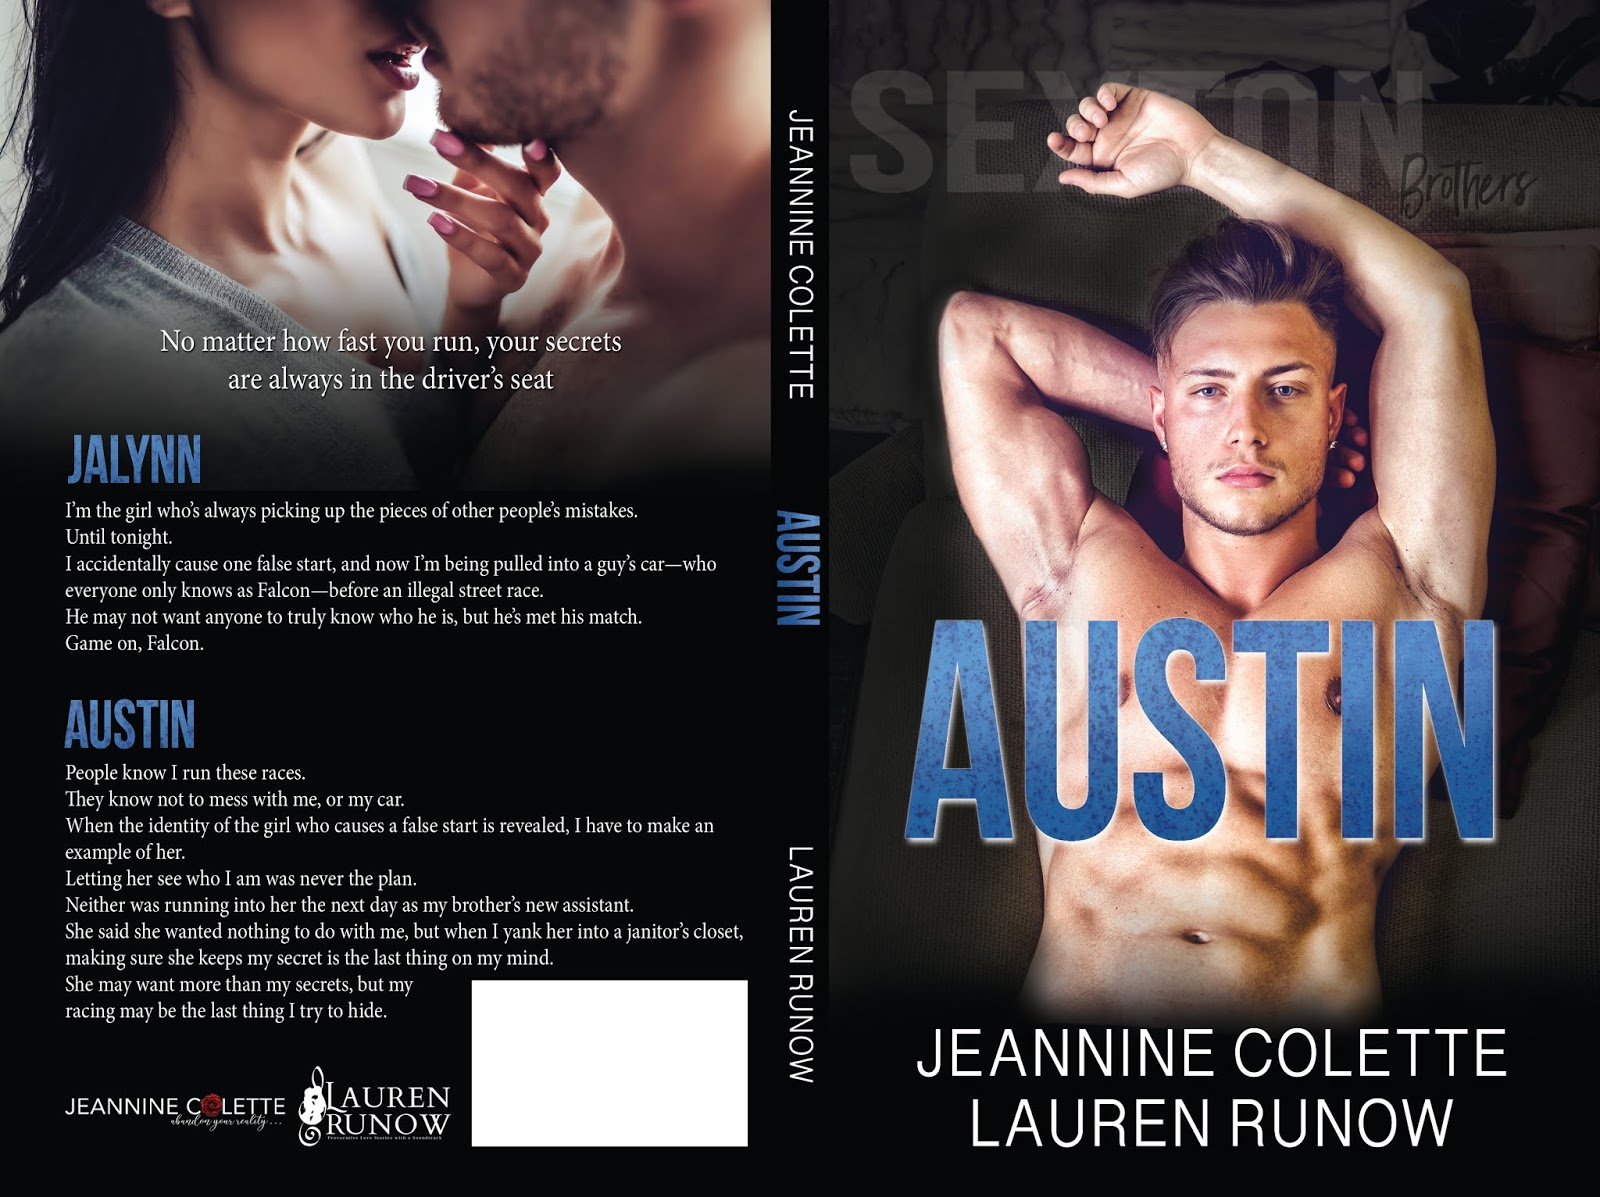 Category Austin A Sexton Brothers Novel By Lauren Runow And Jeannine Colette Cover Reveal Four Chicks Flipping Pages